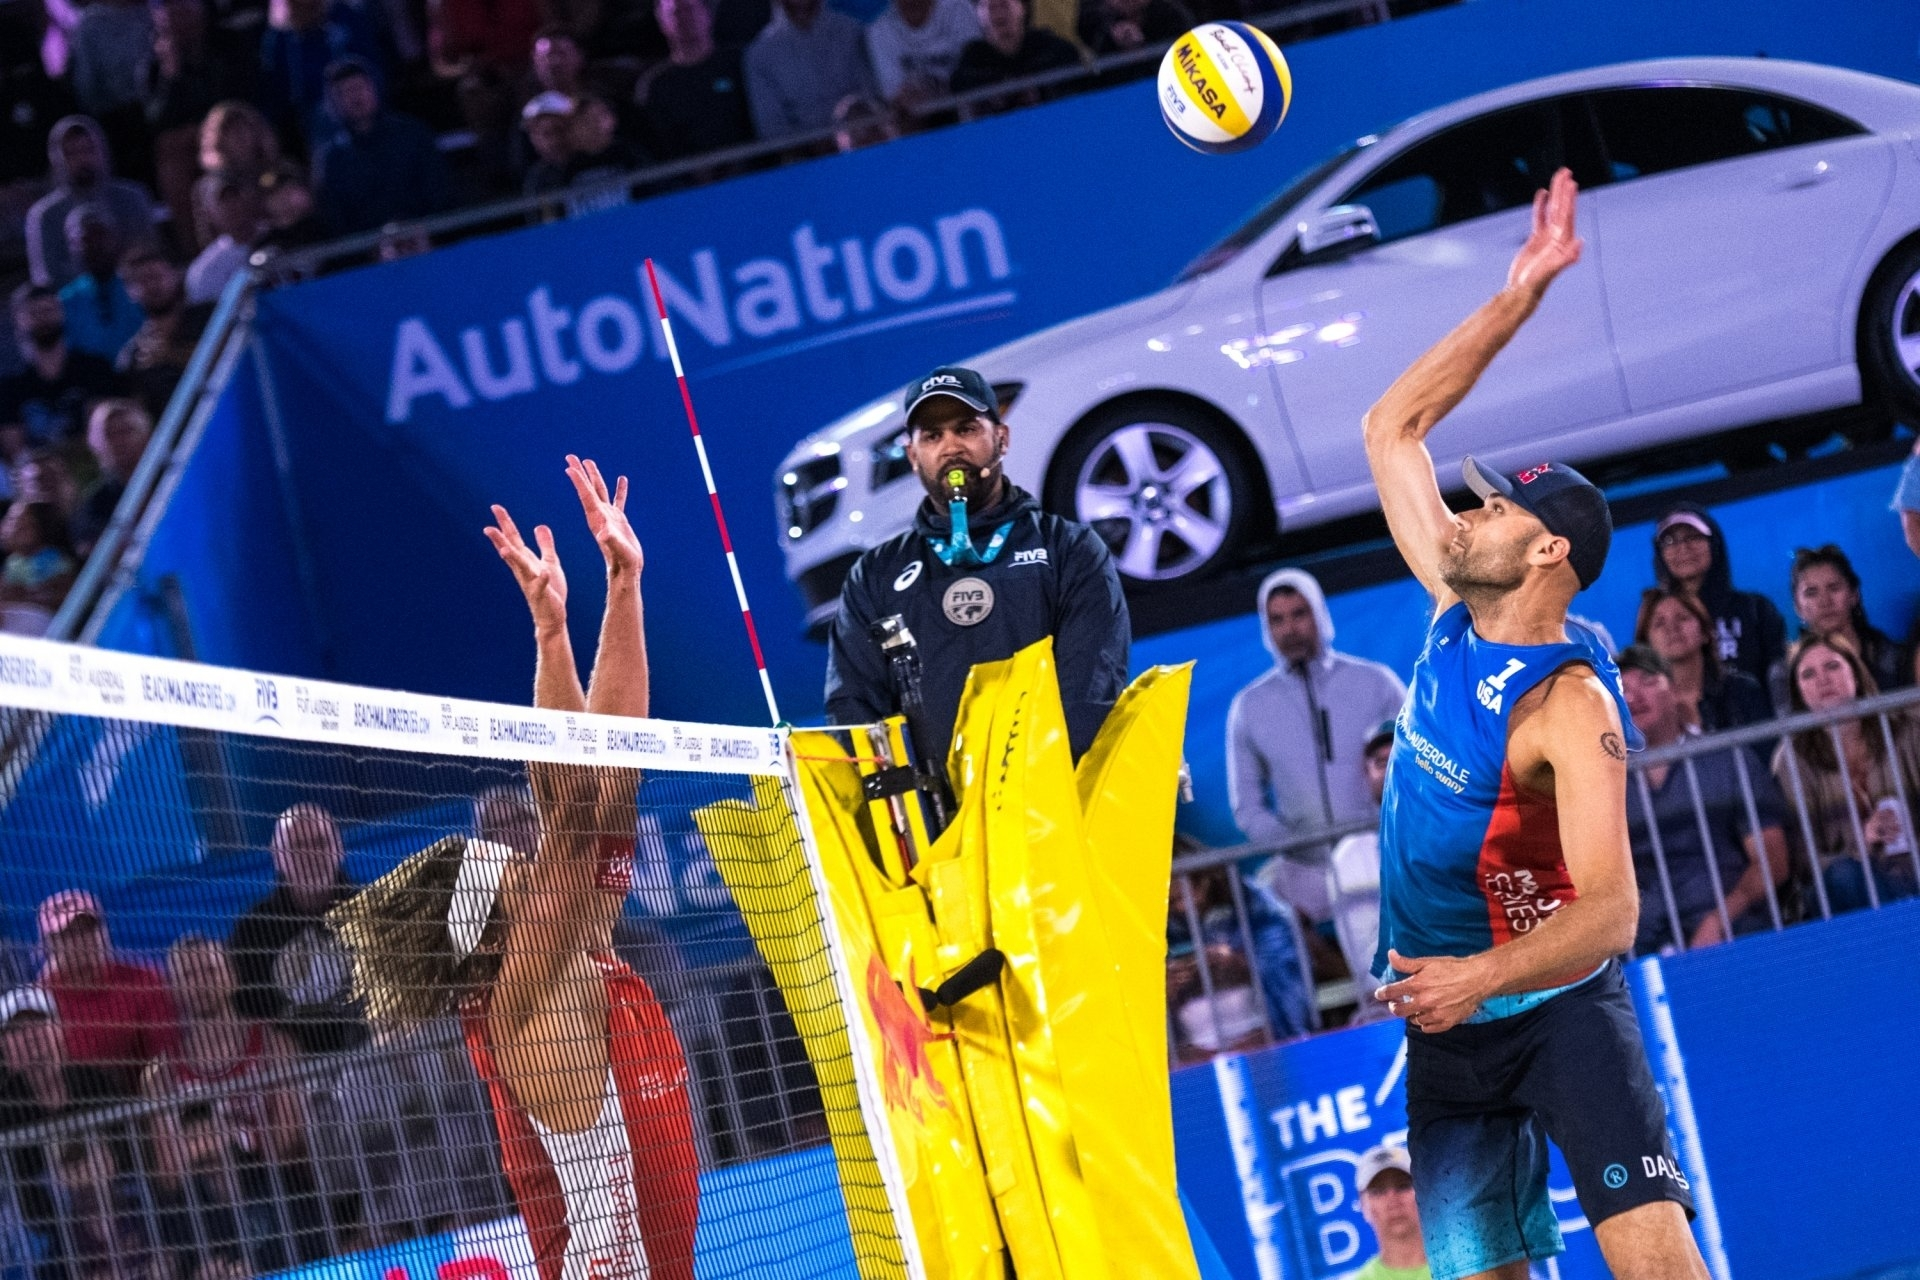 The USA's Phil Dalhausser (right) went onto win gold in Fort Lauderdale in 2018